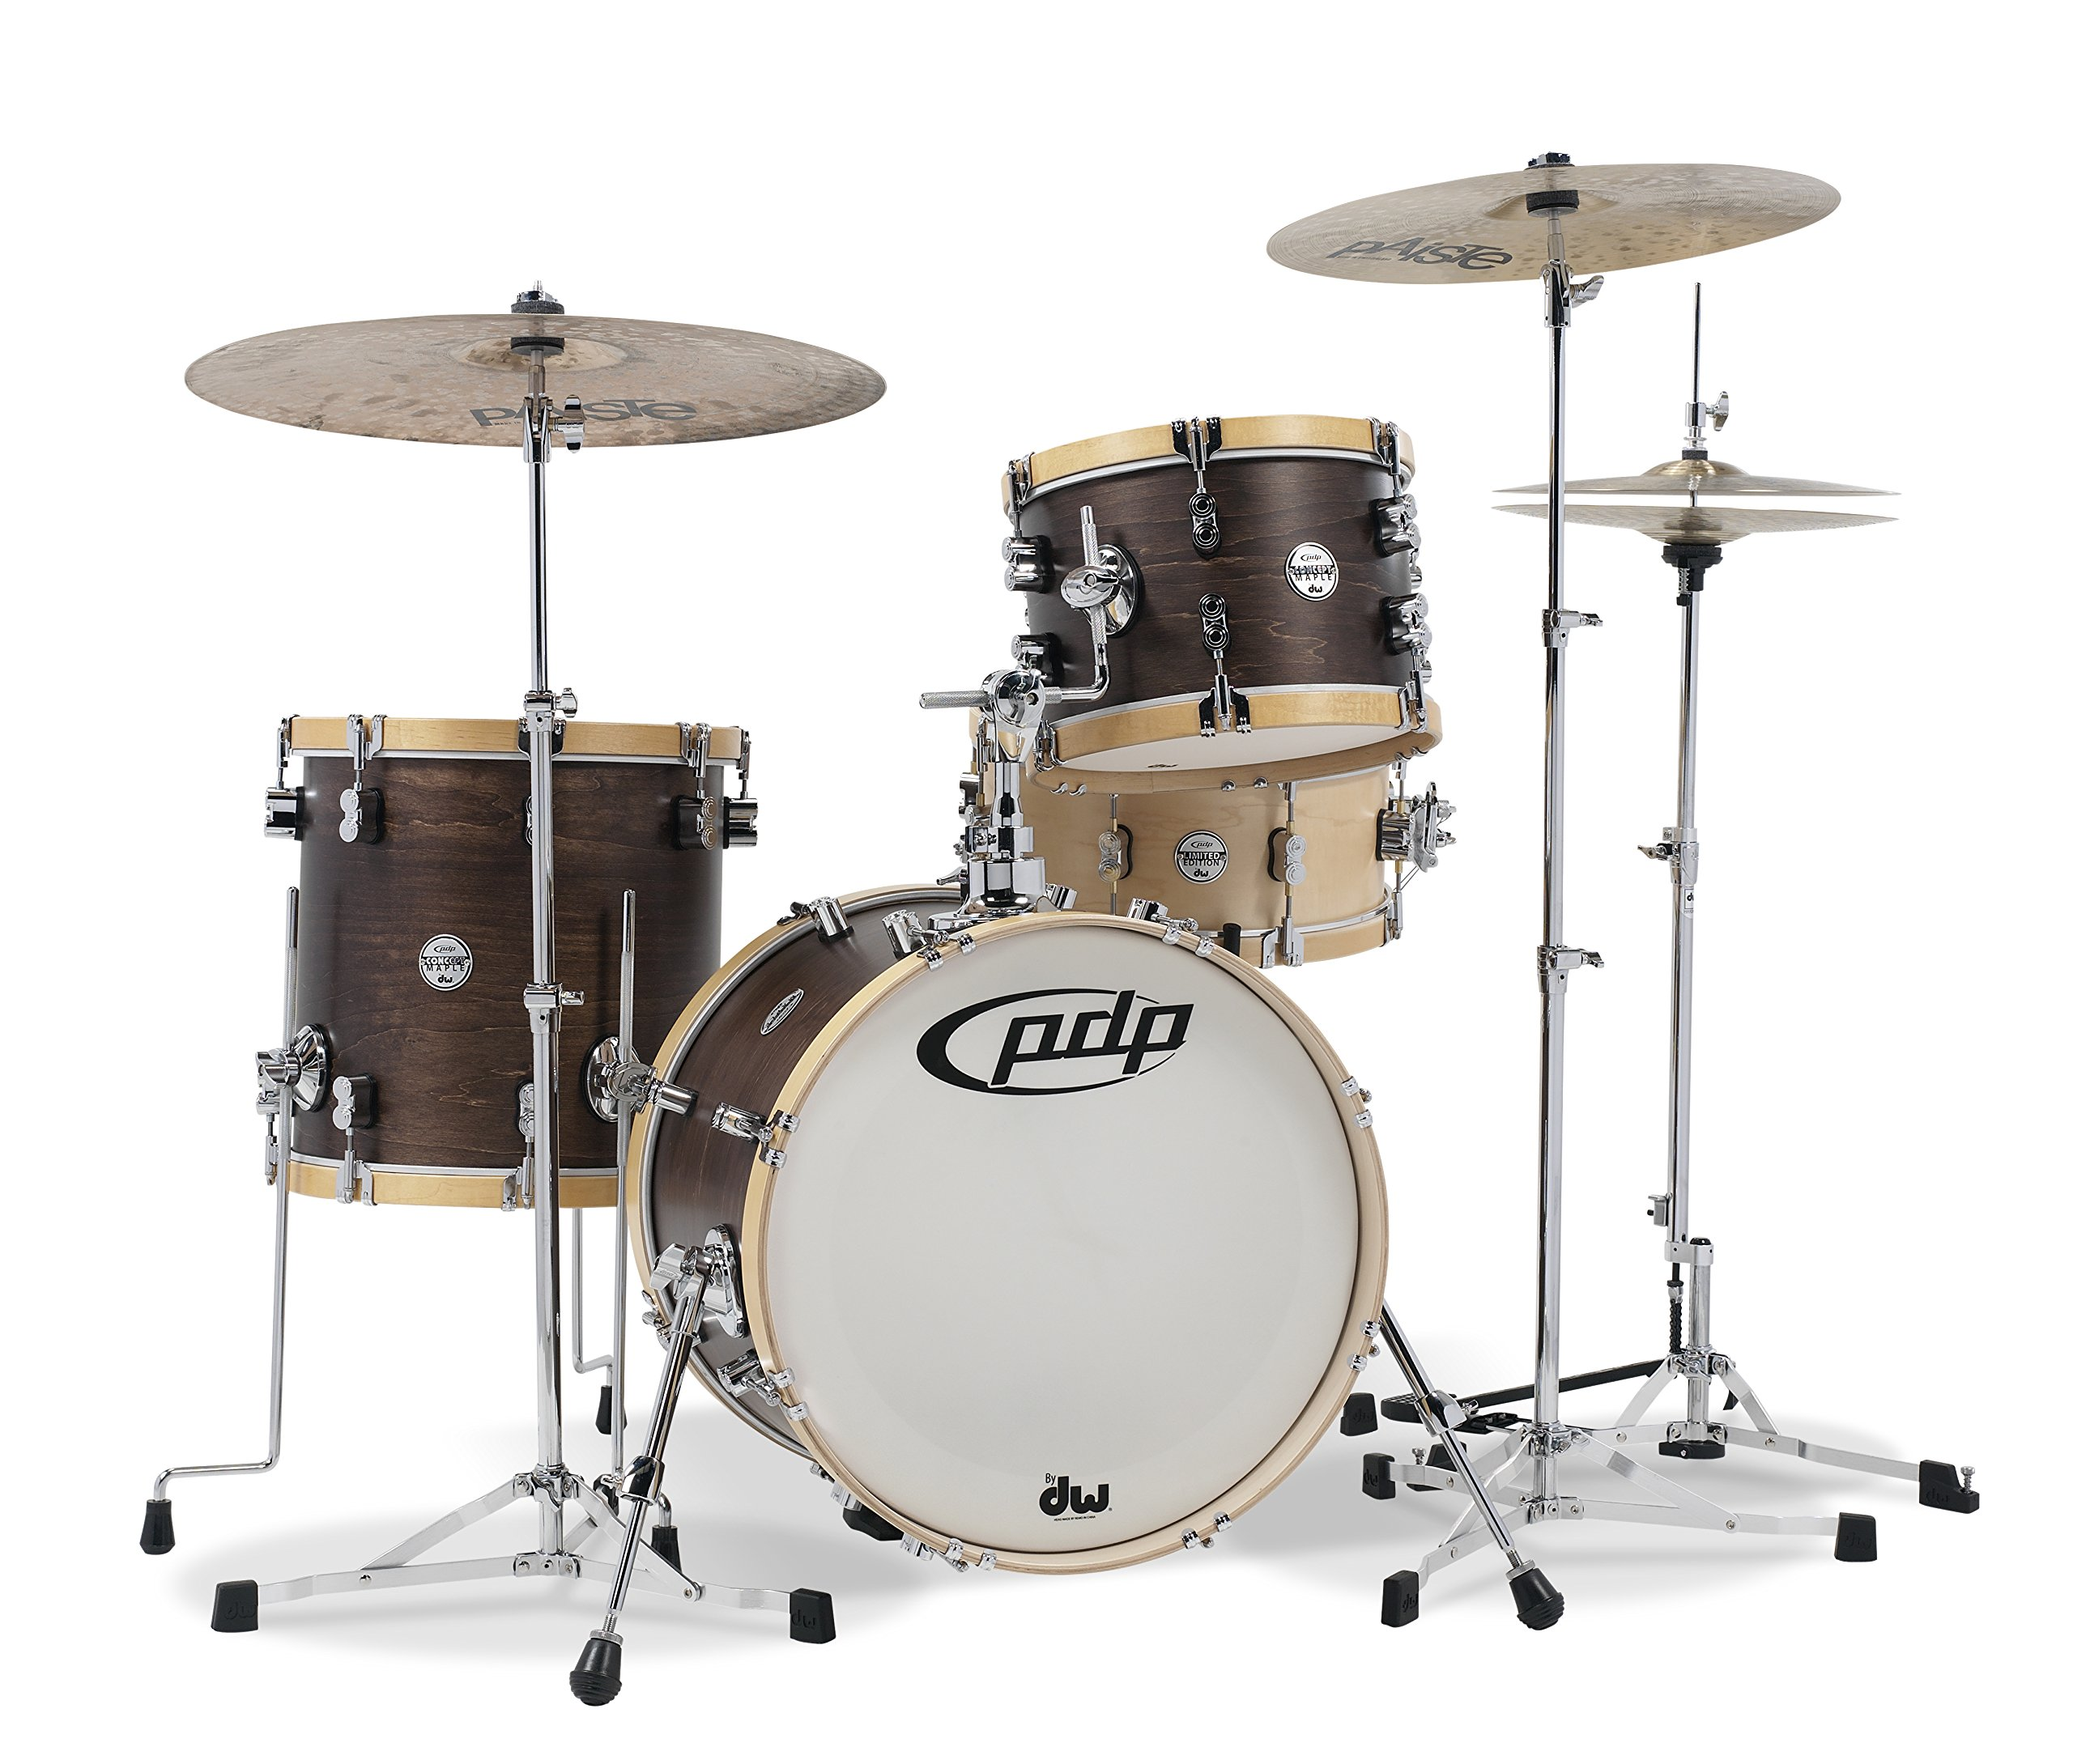 Pacific Drums PDCC1803TN Concept Classic 3-Piece Bop Kit Shell Pack, Walnut/Natural